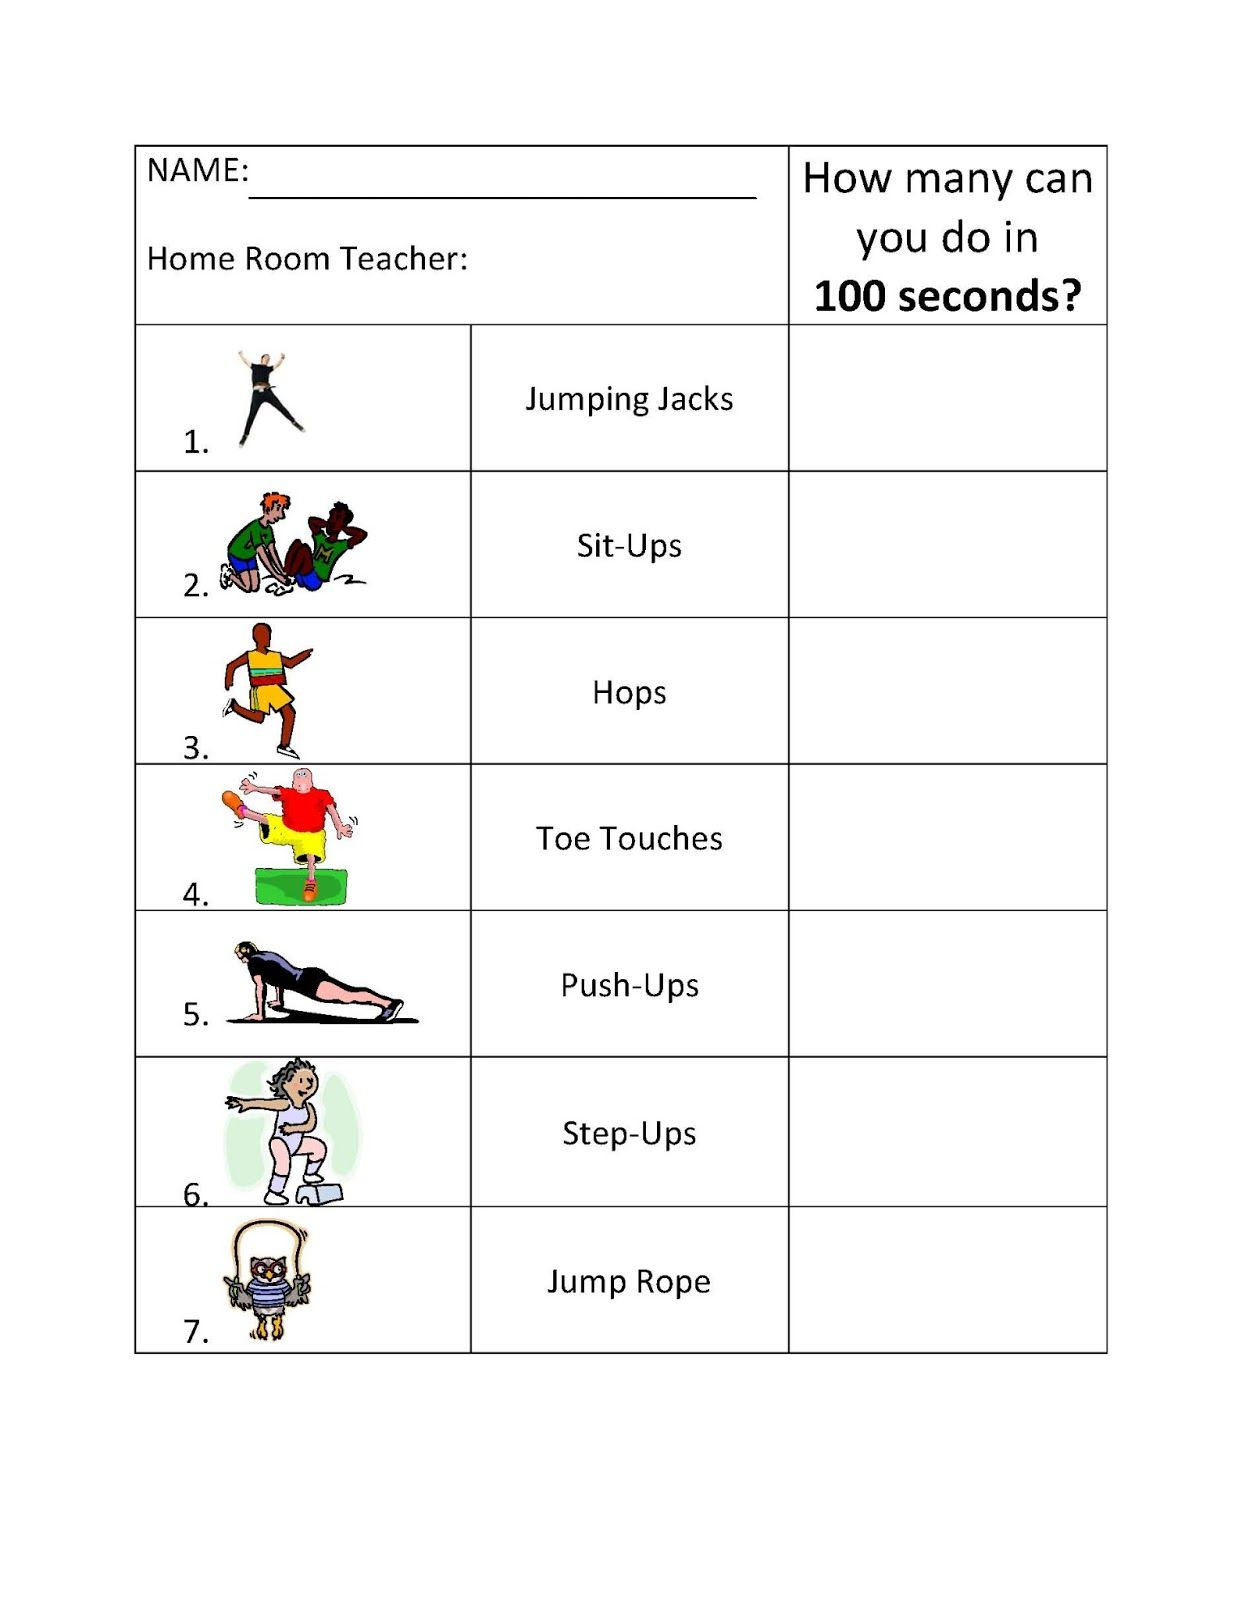 Physical Education And More 100 Second Challenge Use The